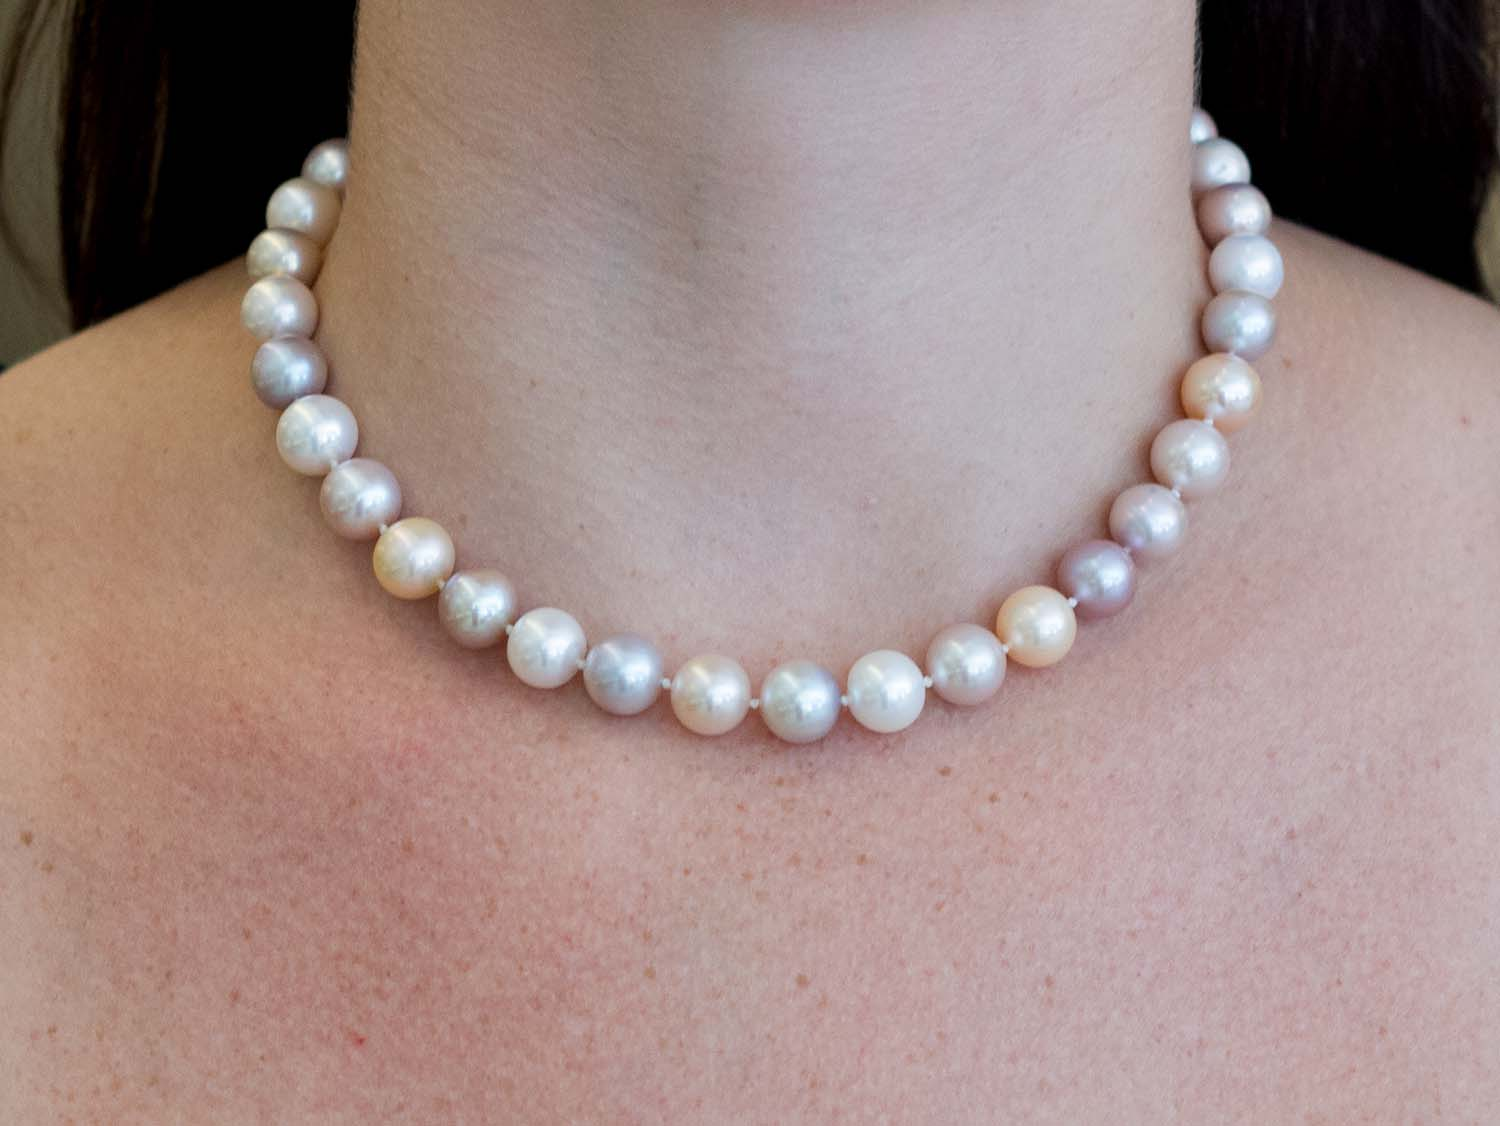 White Gold, Diamond and Pearl Necklace in Washington DC